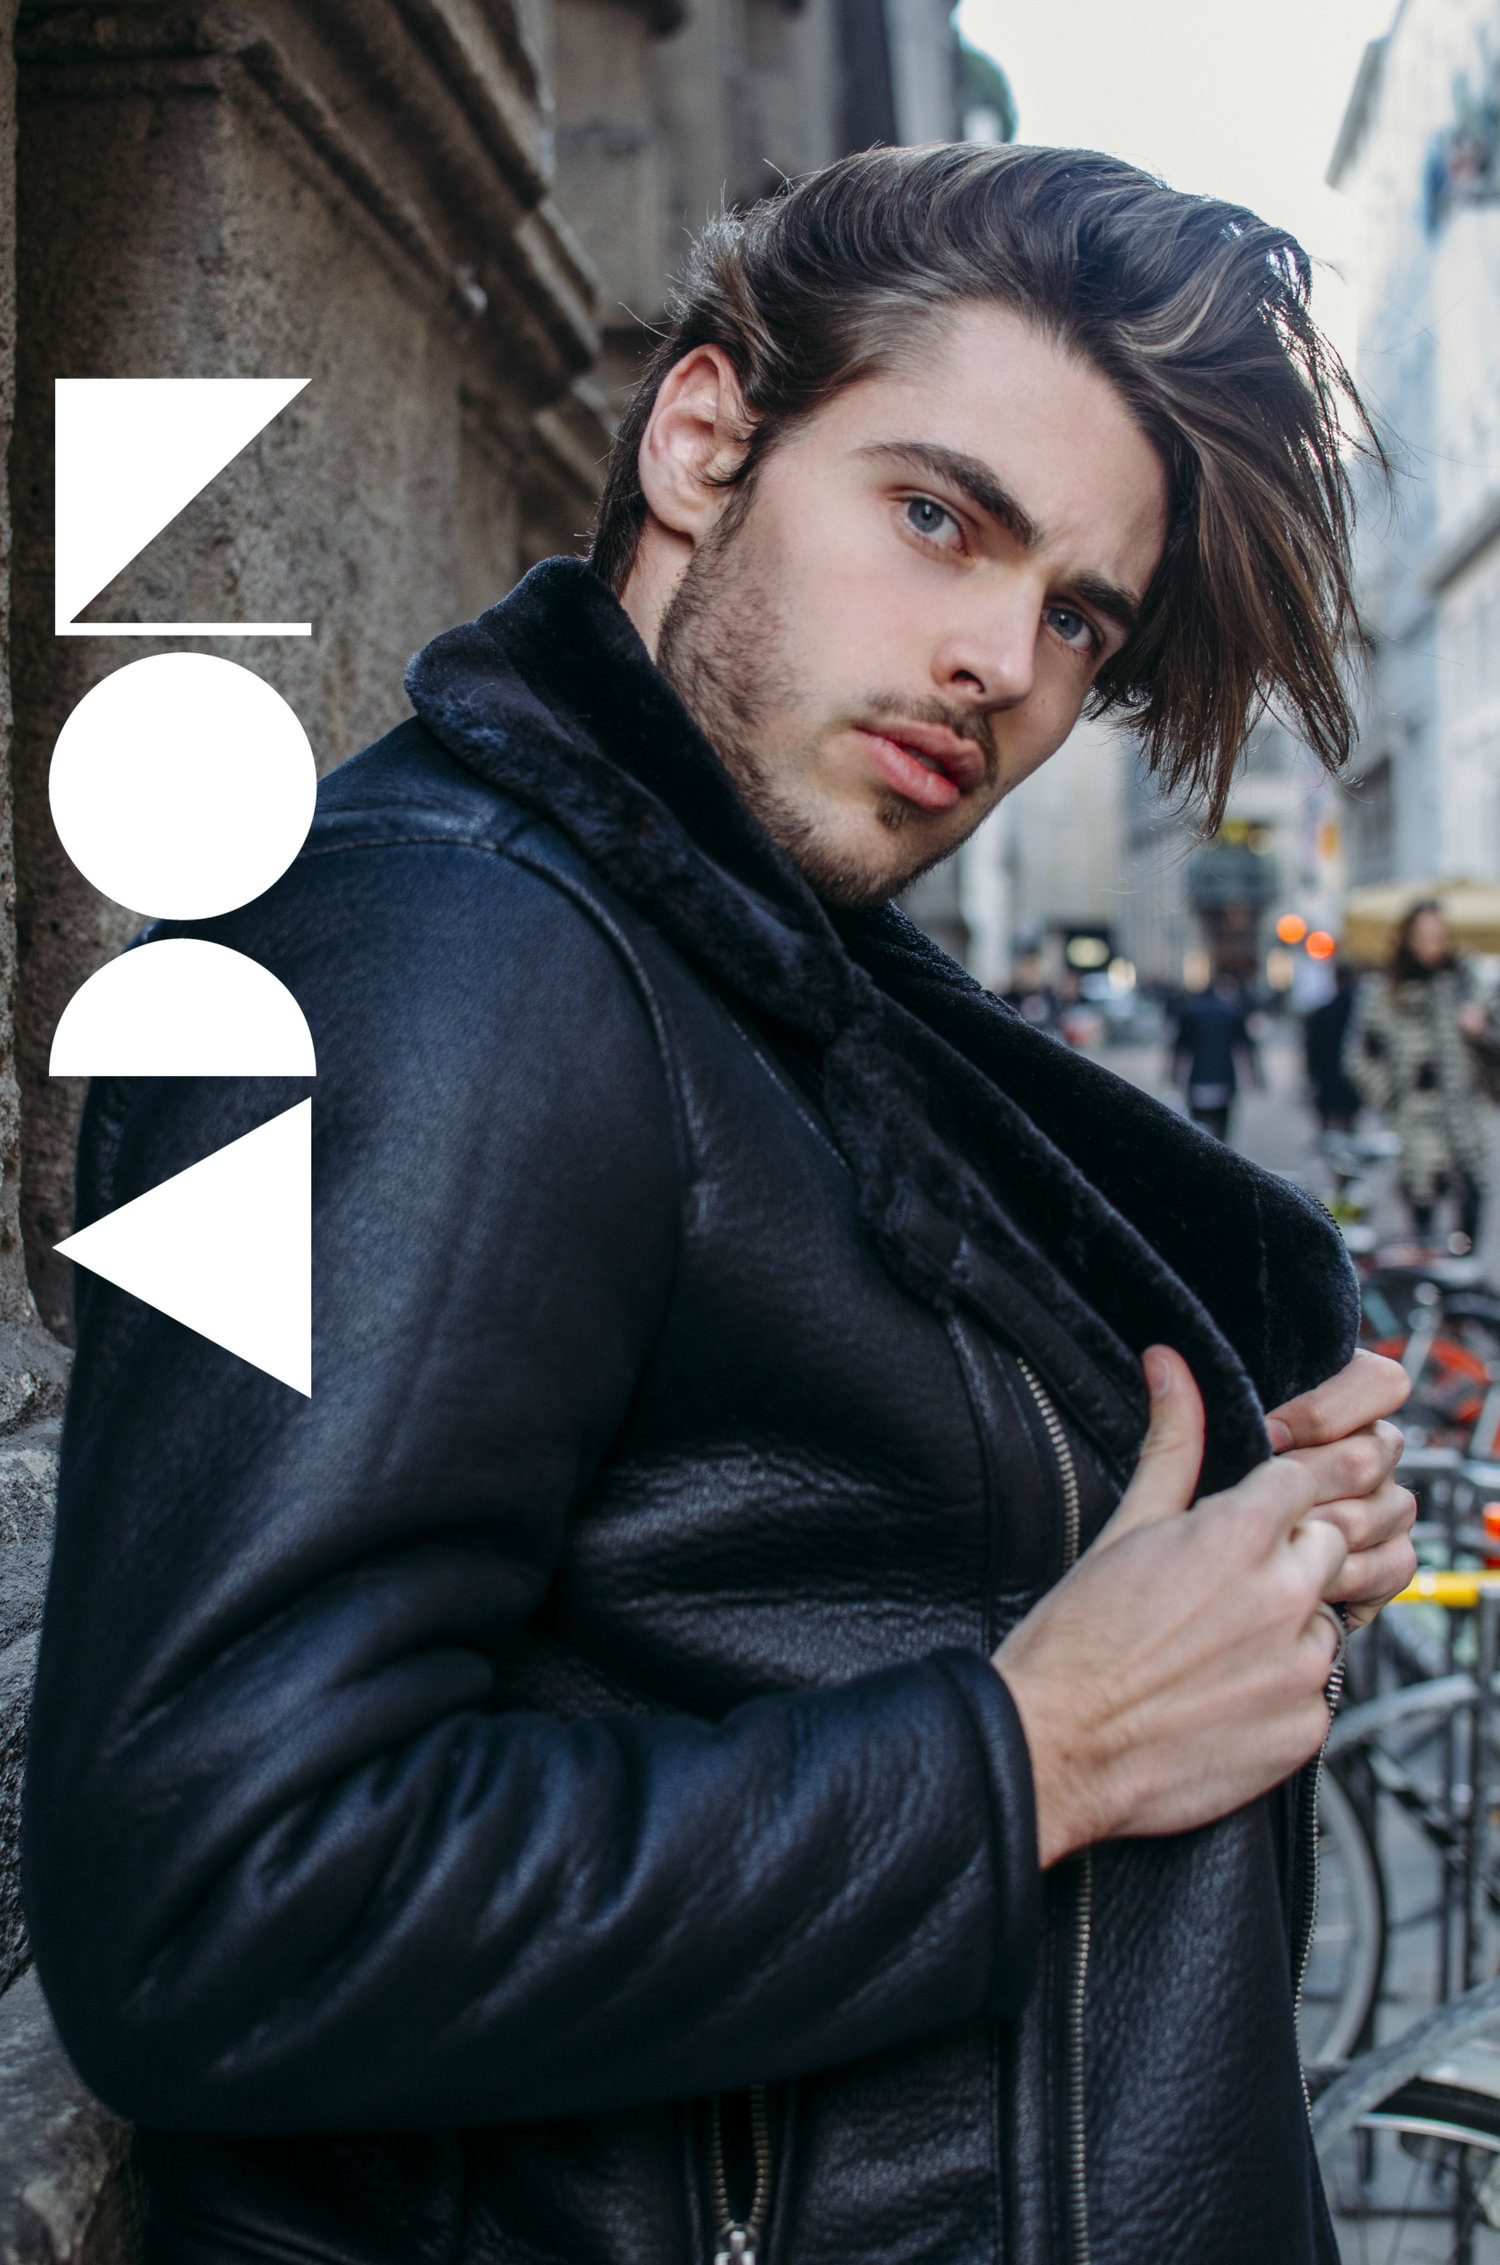 Adon Exclusive: Model Charly Poirier By Margarida Cautela